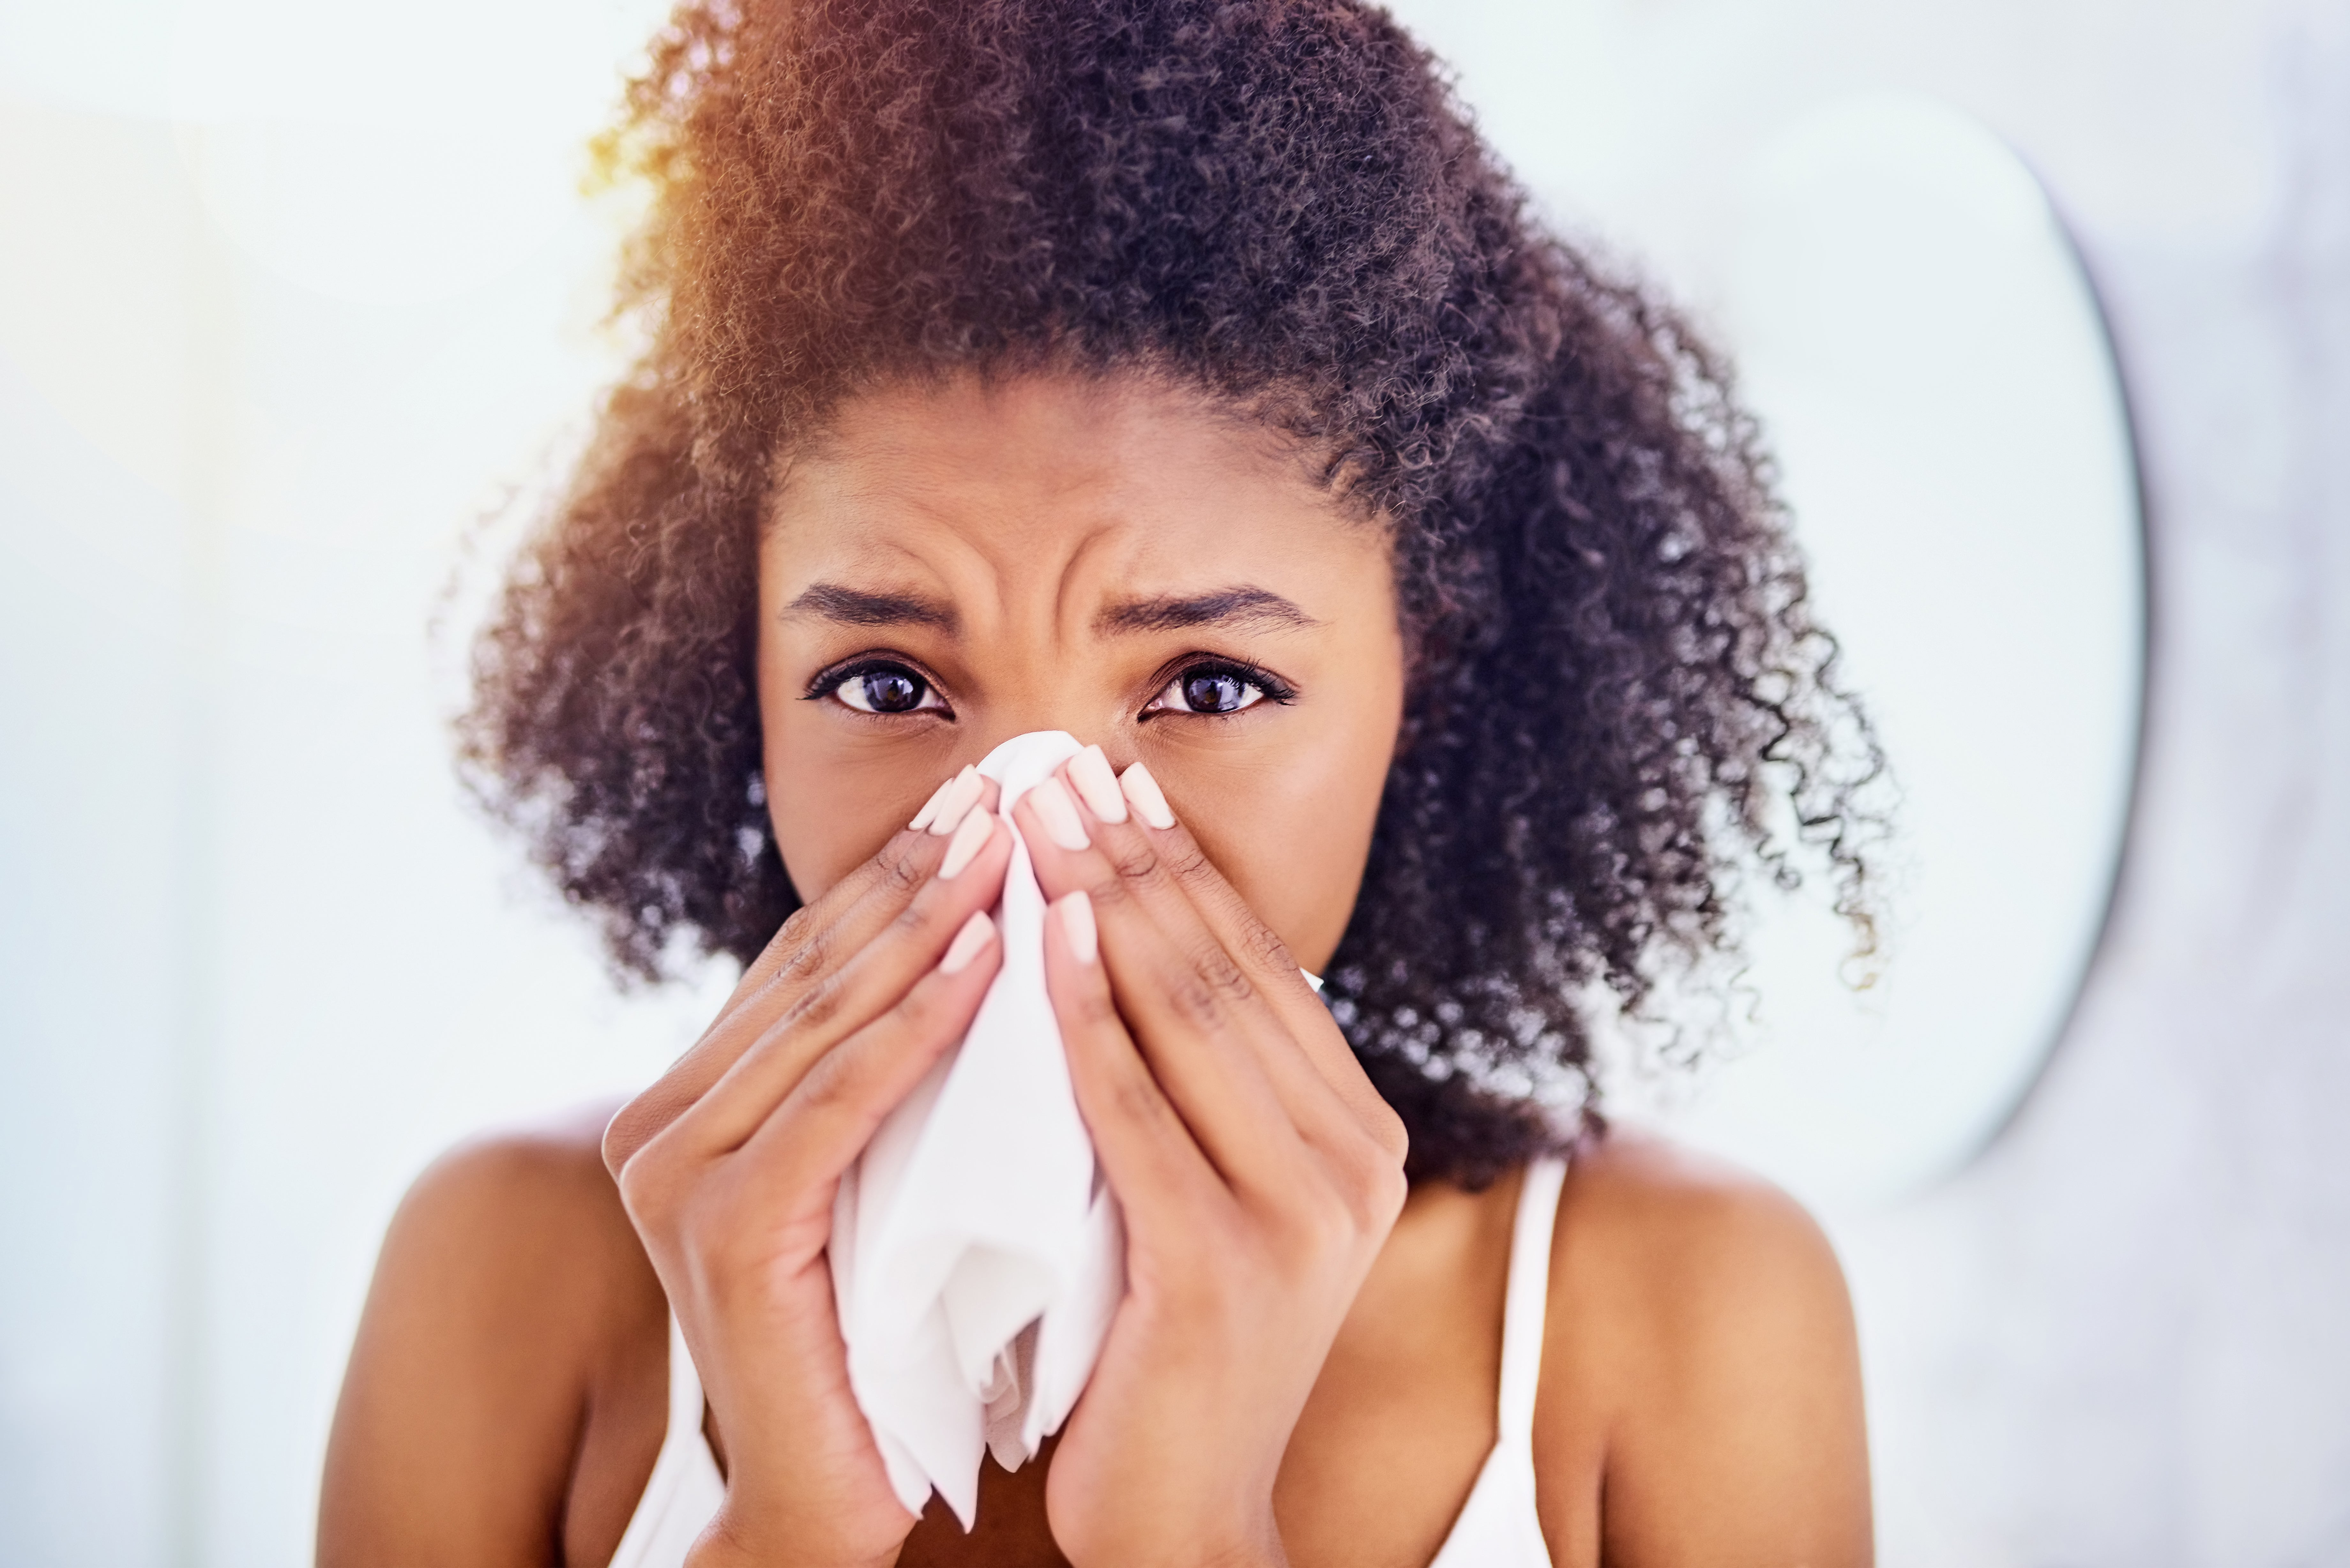 5 Simple Home Remedies To Beat Flu and Cold Symptoms